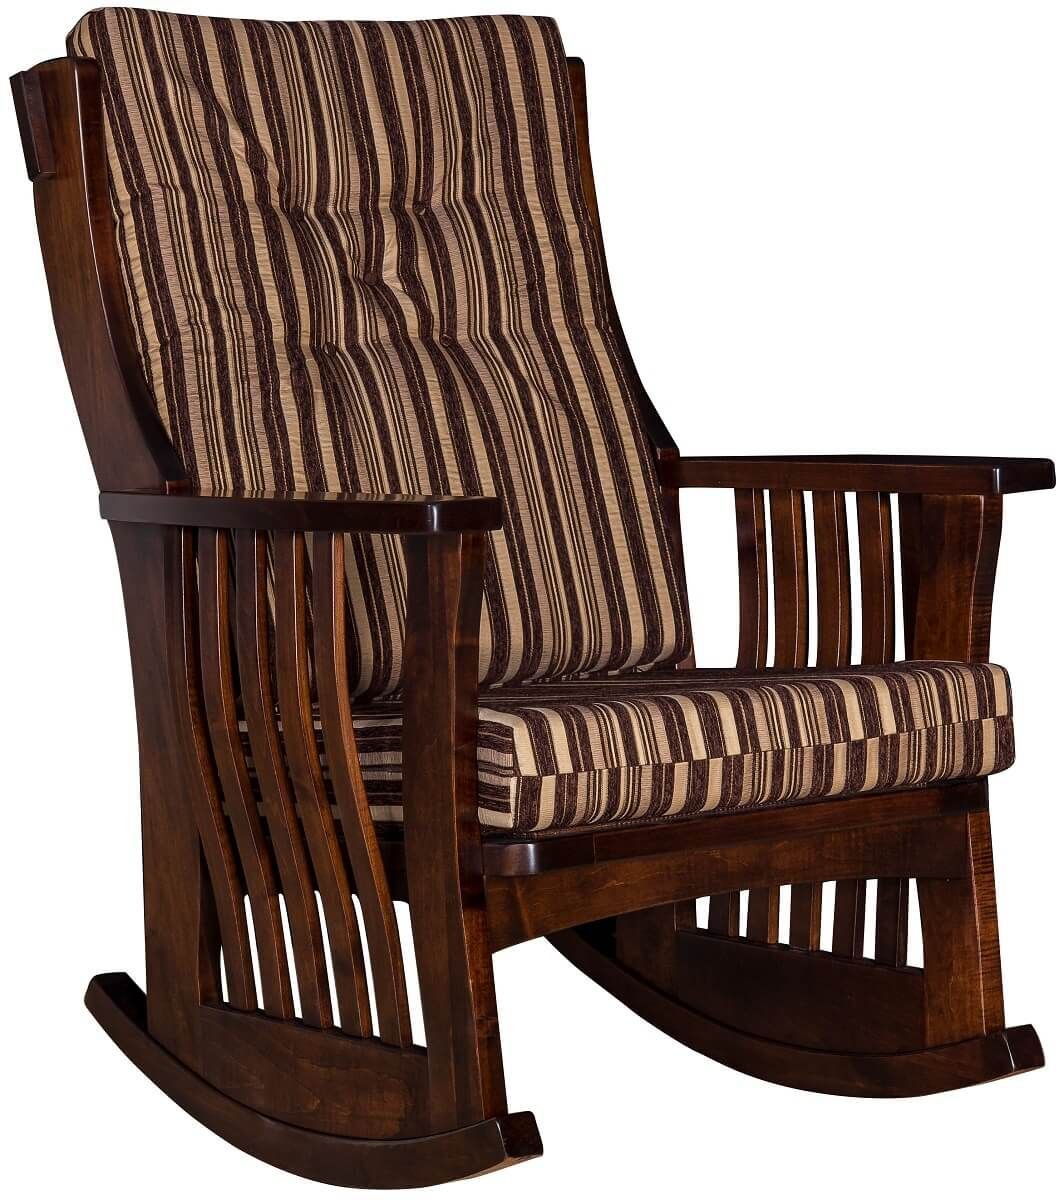 Brown Maple Rocking Chair with Cushions